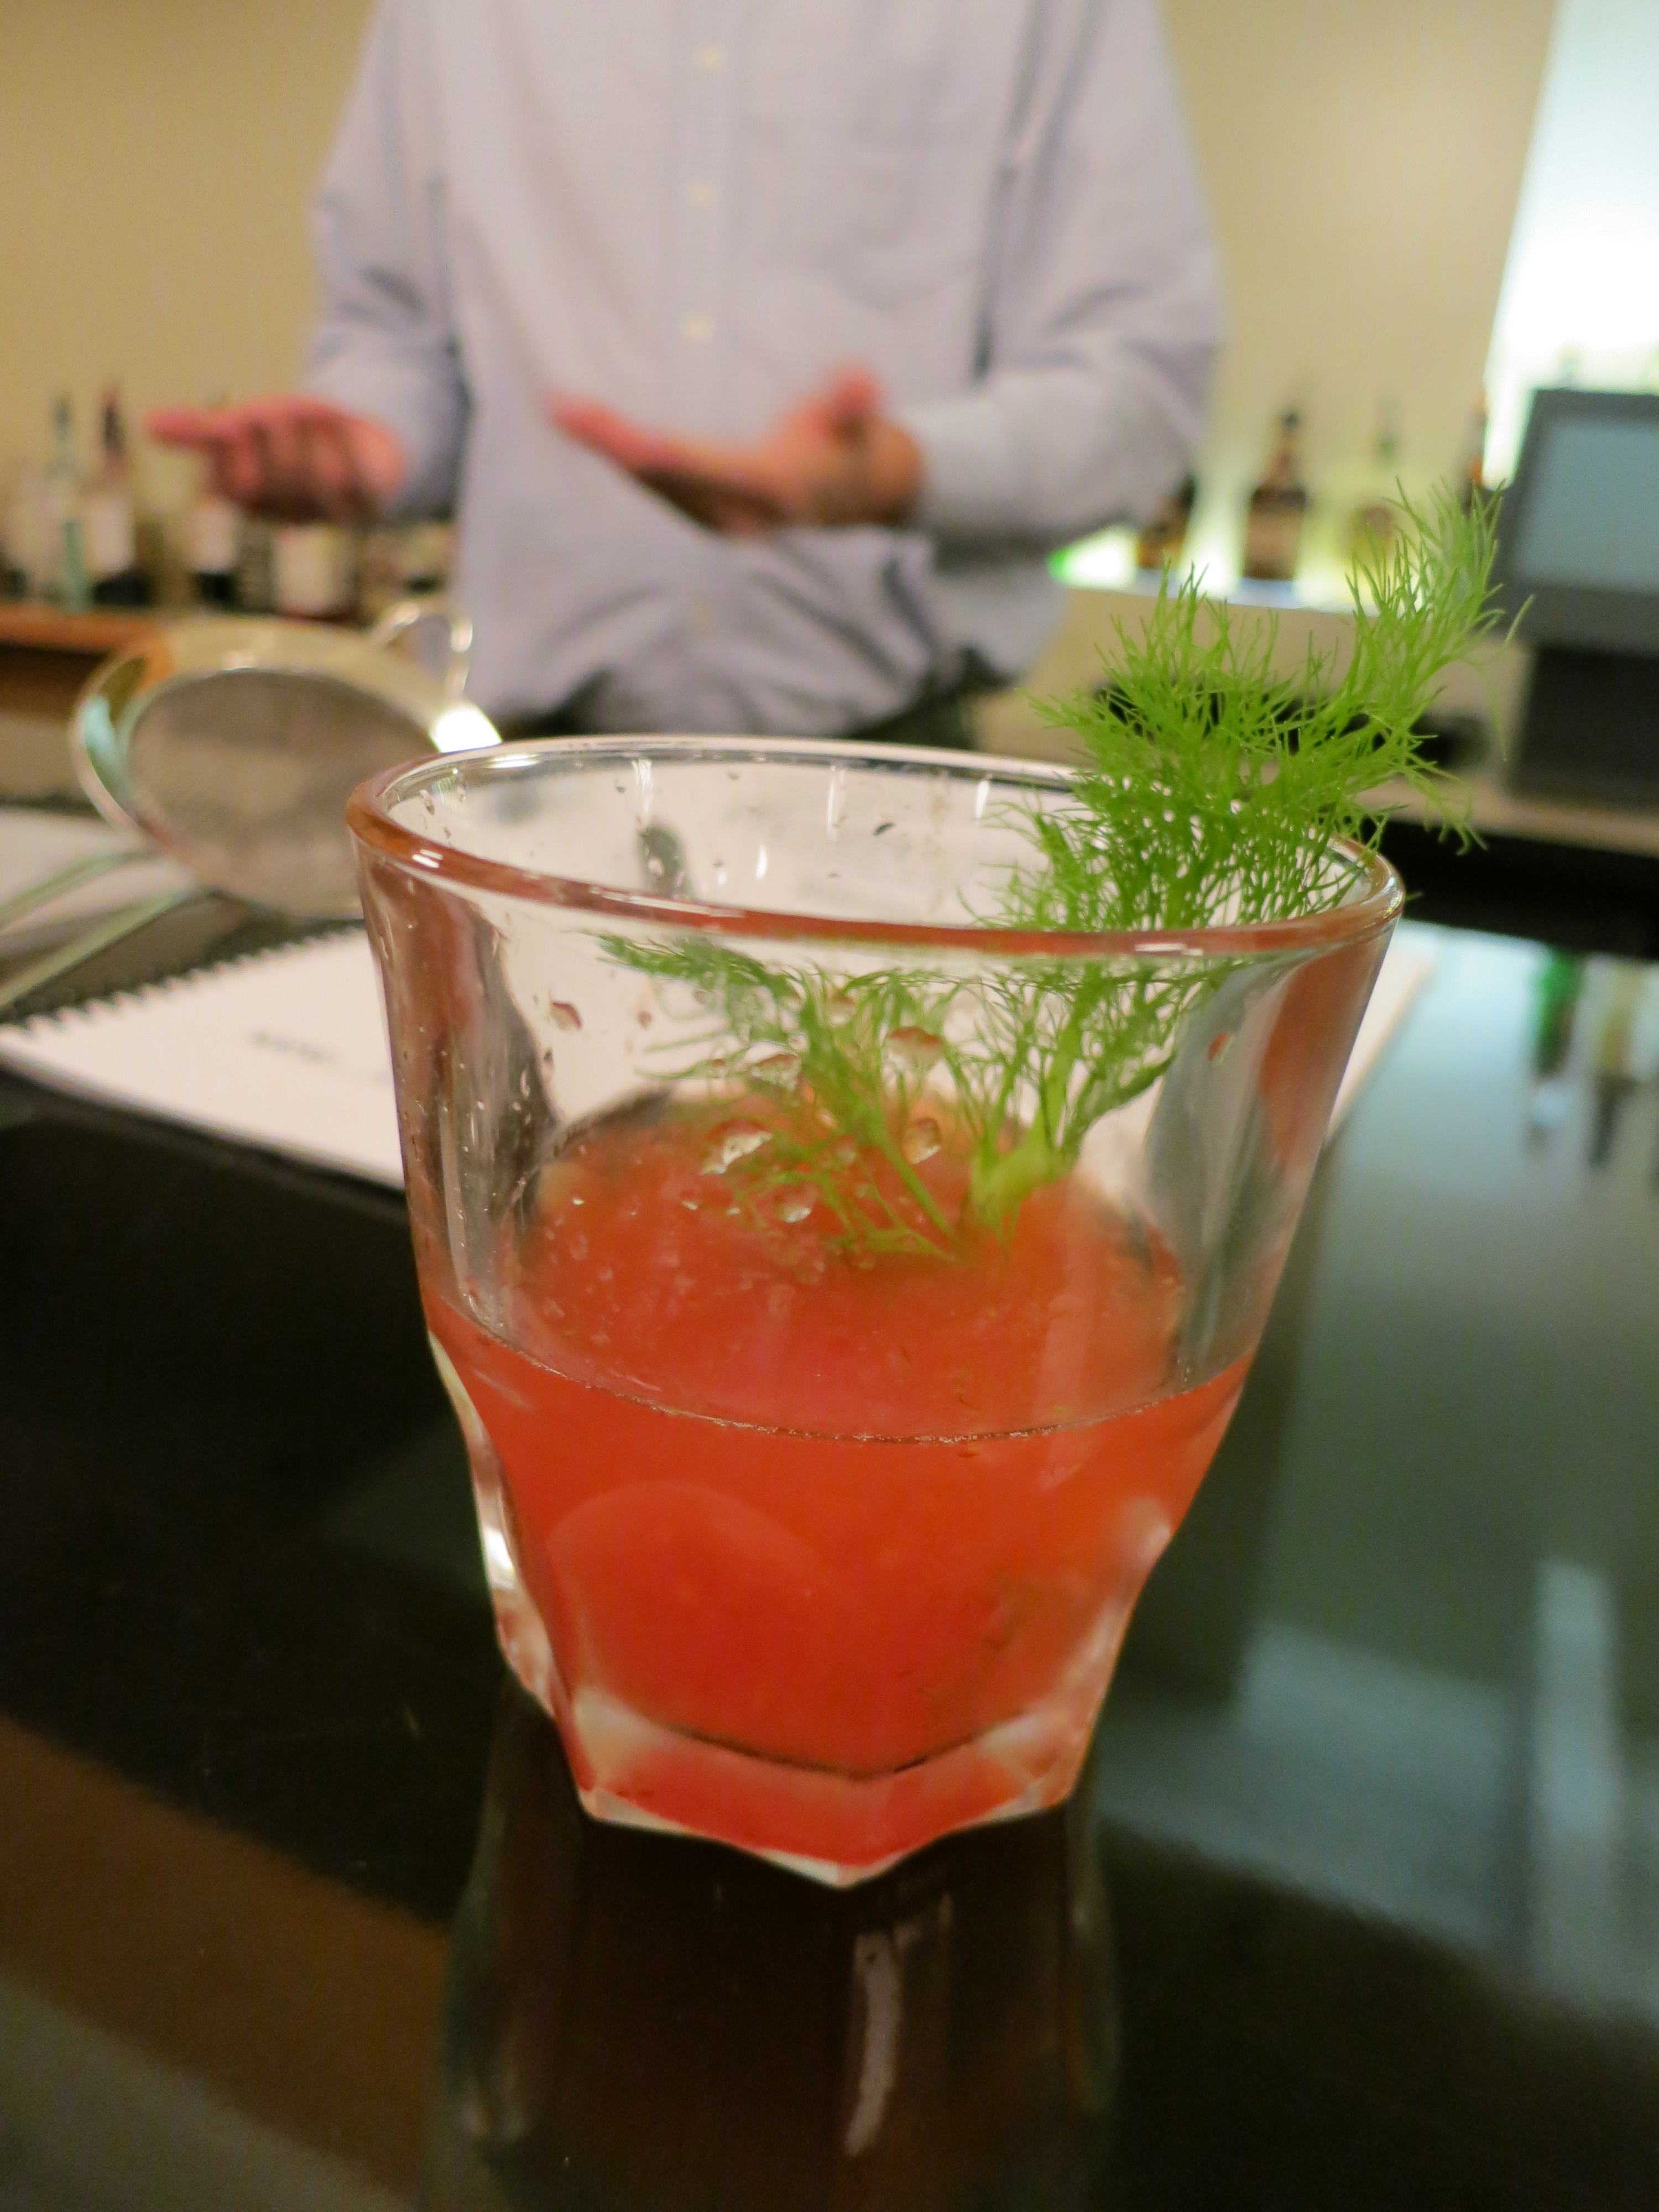 Karra's Fennel Mix cocktail made at a class she took in the Metropolitan Bartending School in Vancouver, BC